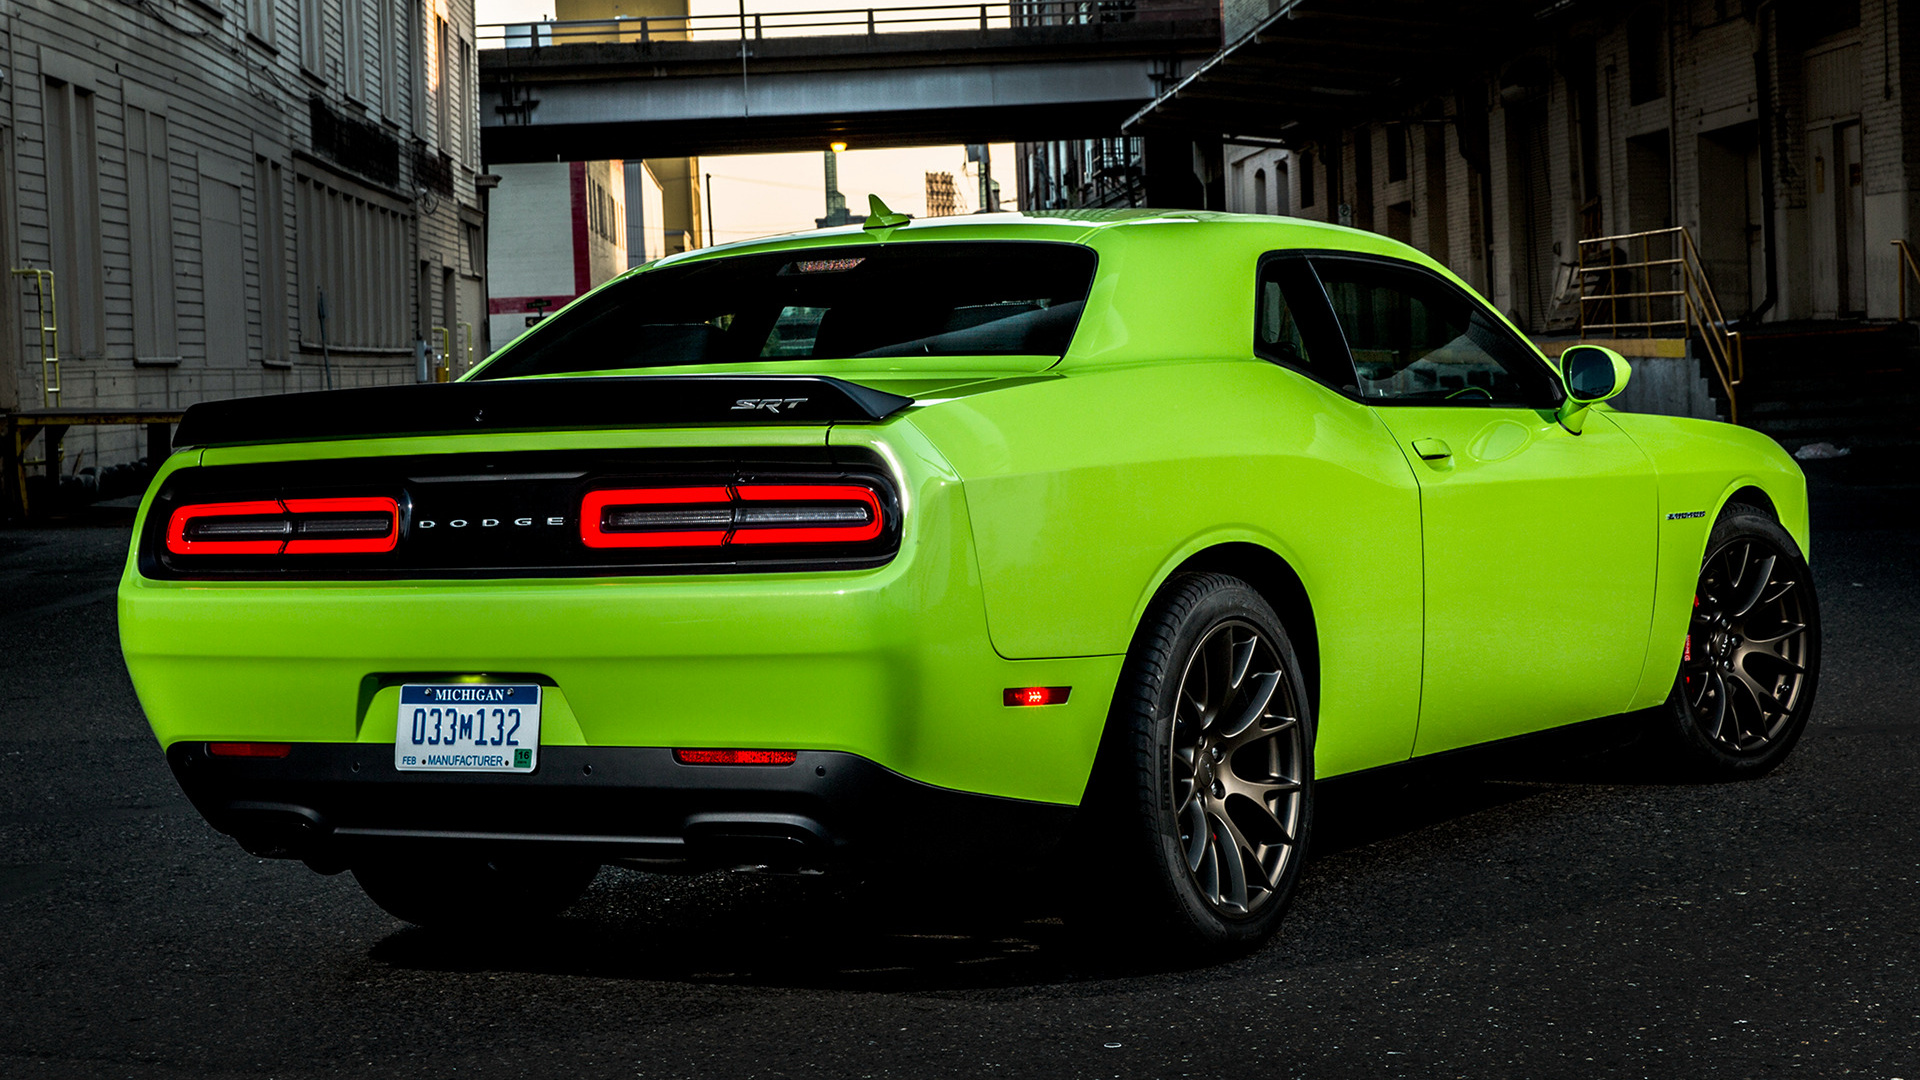 Dodge Challenger Srt Hellcat 2015 Wallpapers And Hd